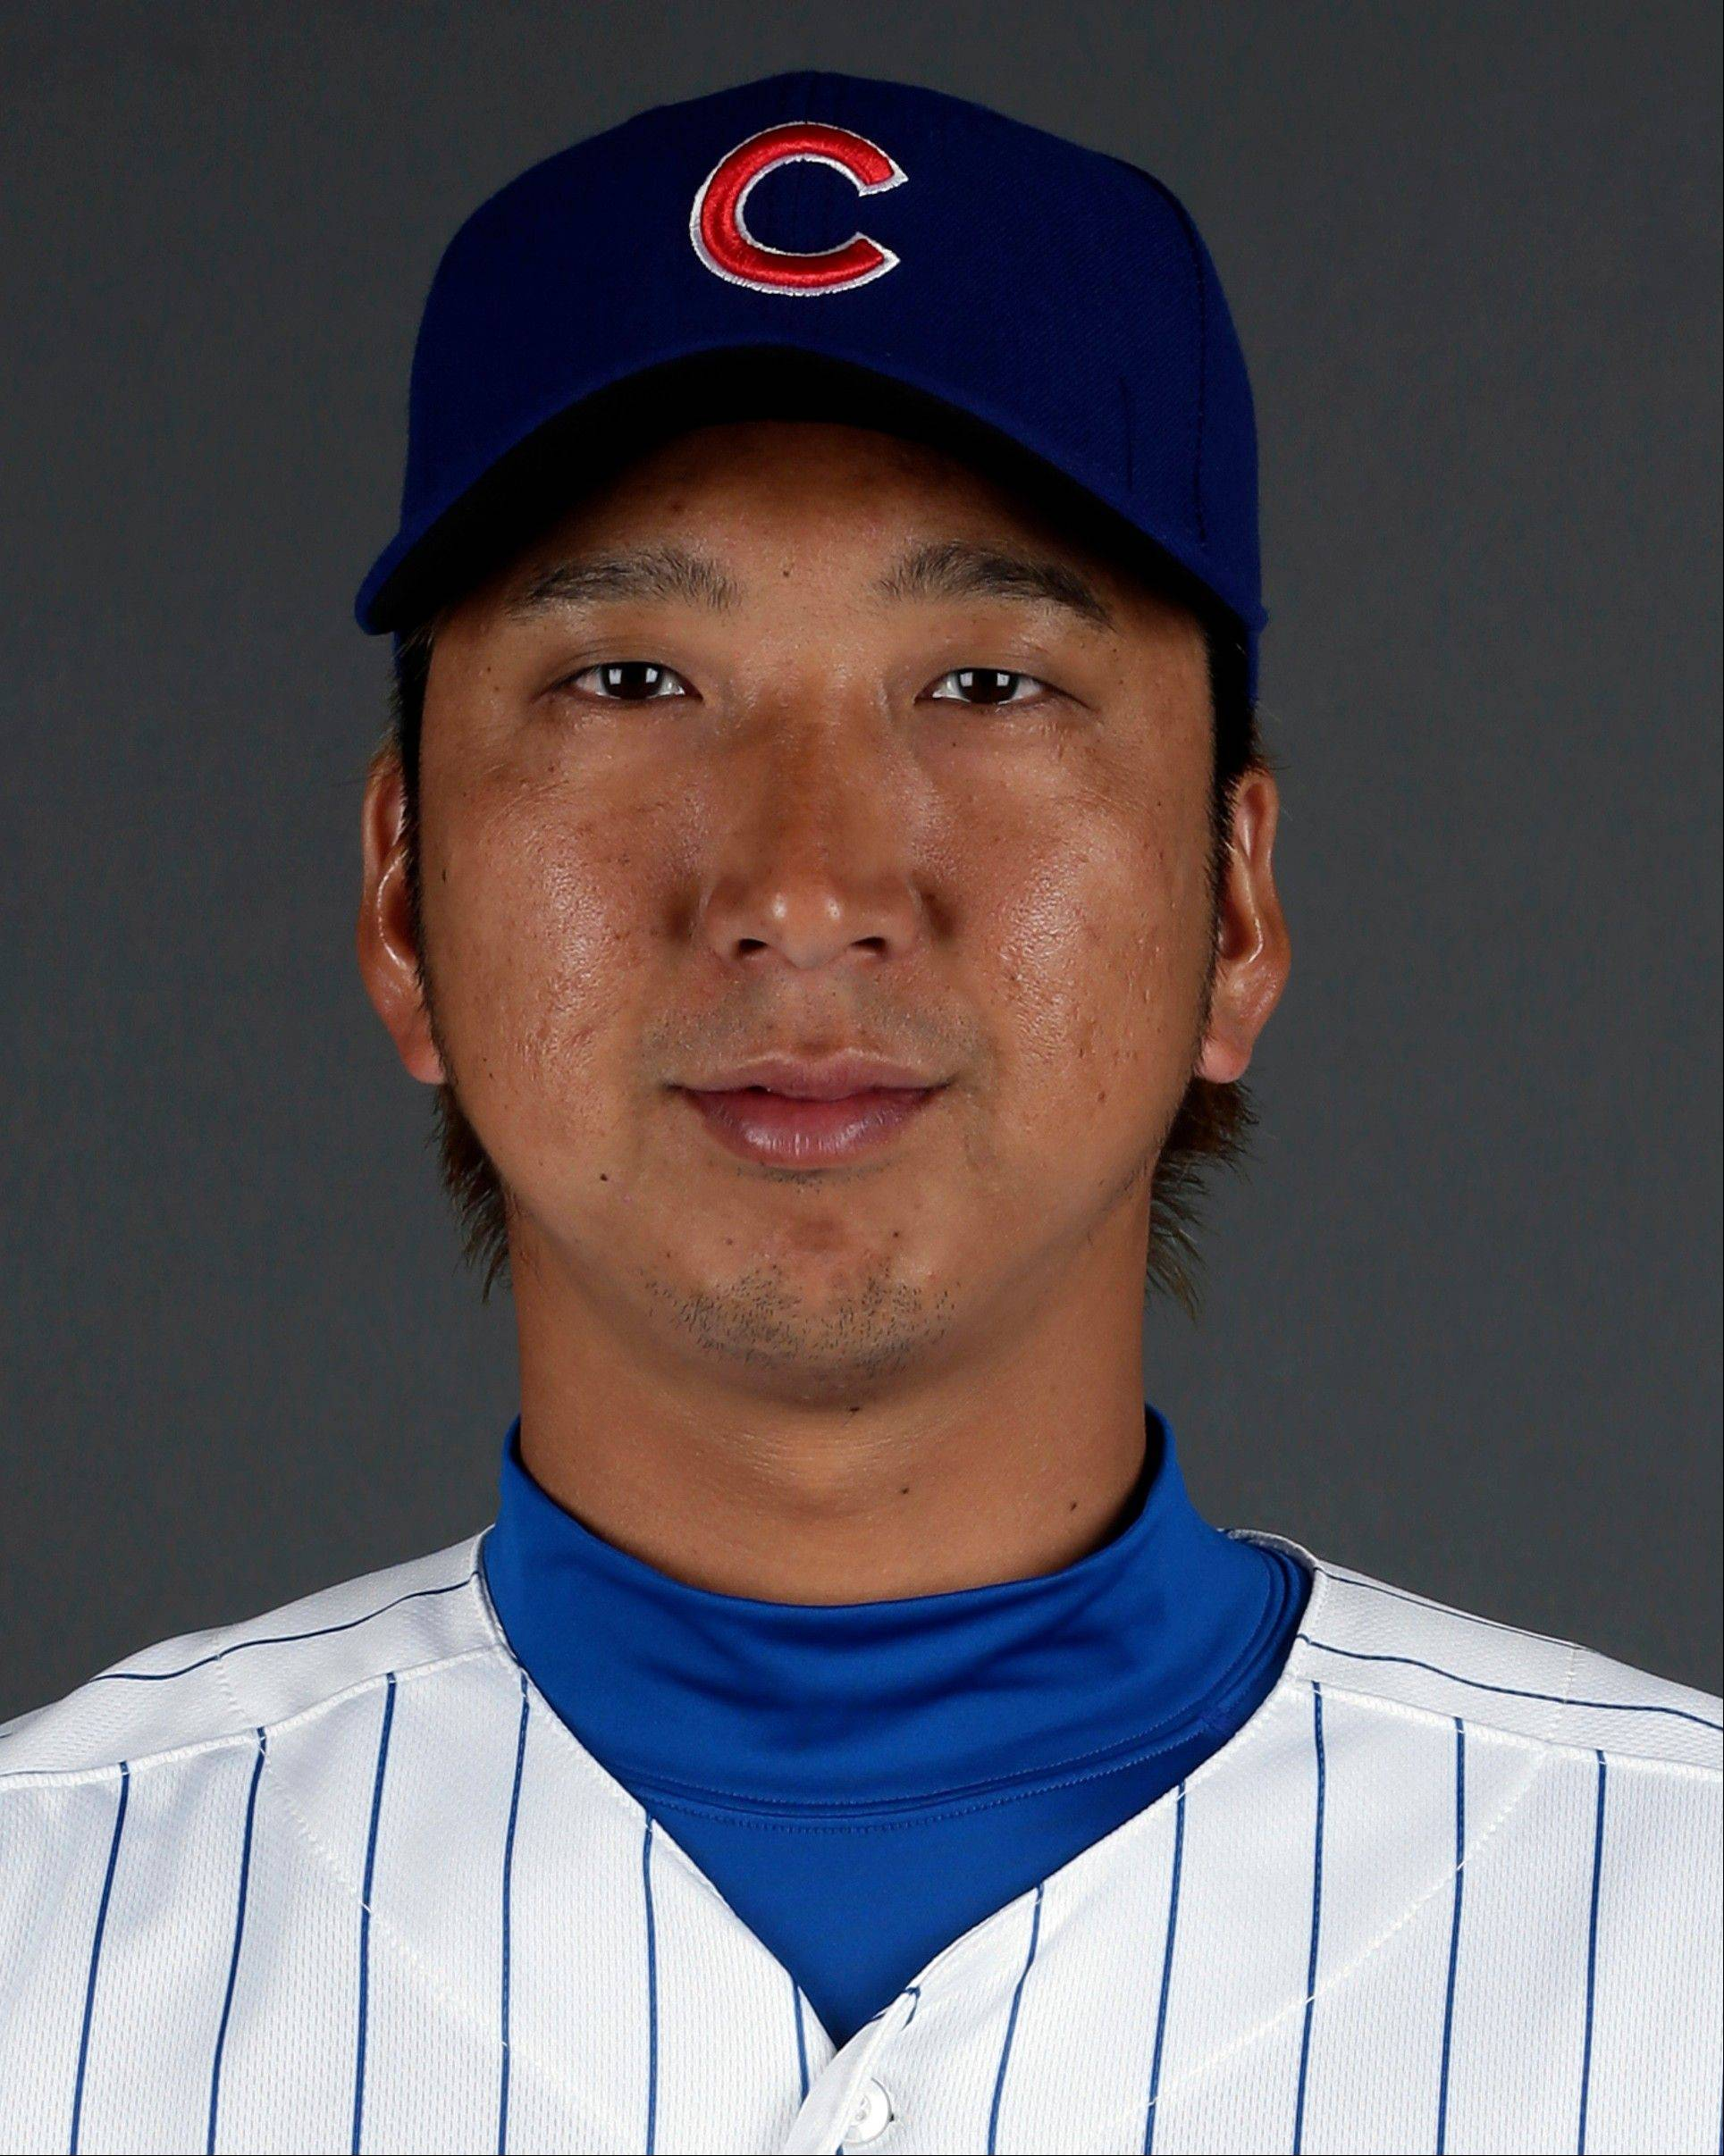 FILE - This is a 2013 file photo showing Kyuji Fujikawa of the Chicago Cubs baseball team. Cubs reliever Fujikawa will have Tommy John surgery to repair a torn ligament in his right elbow and miss the rest of the season. Fujikawa pitched 1 2-3 scoreless innings against Cincinnati on Sunday, May 26, 2013, before leaving with the injury. (AP Photo/Morry Gash, File)